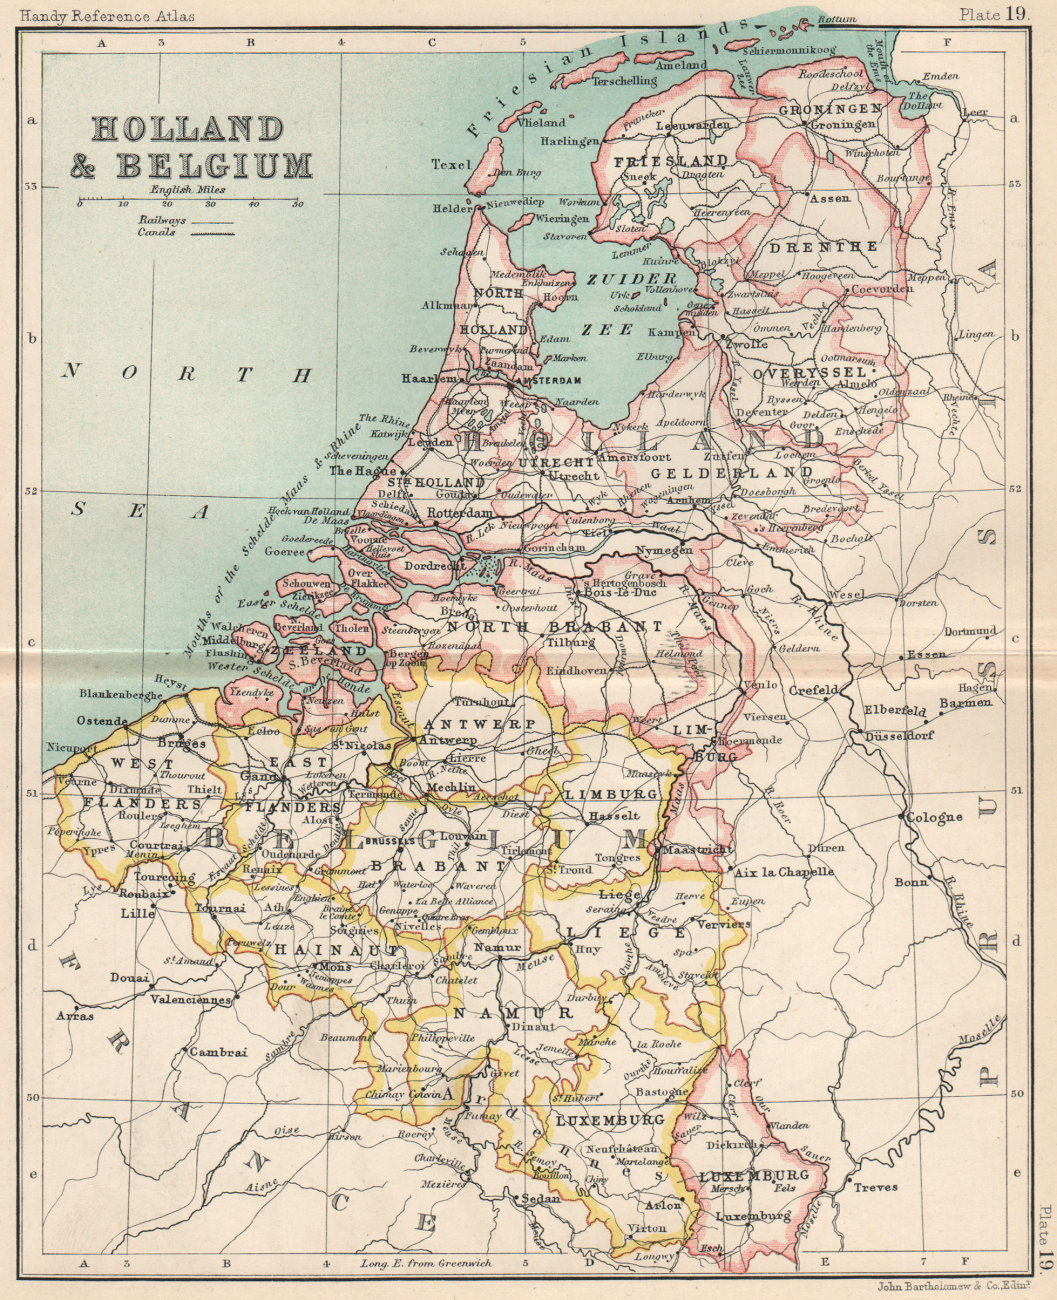 Holland and Belgium. Luxembourg. Benelux. BARTHOLOMEW 1904 old antique map